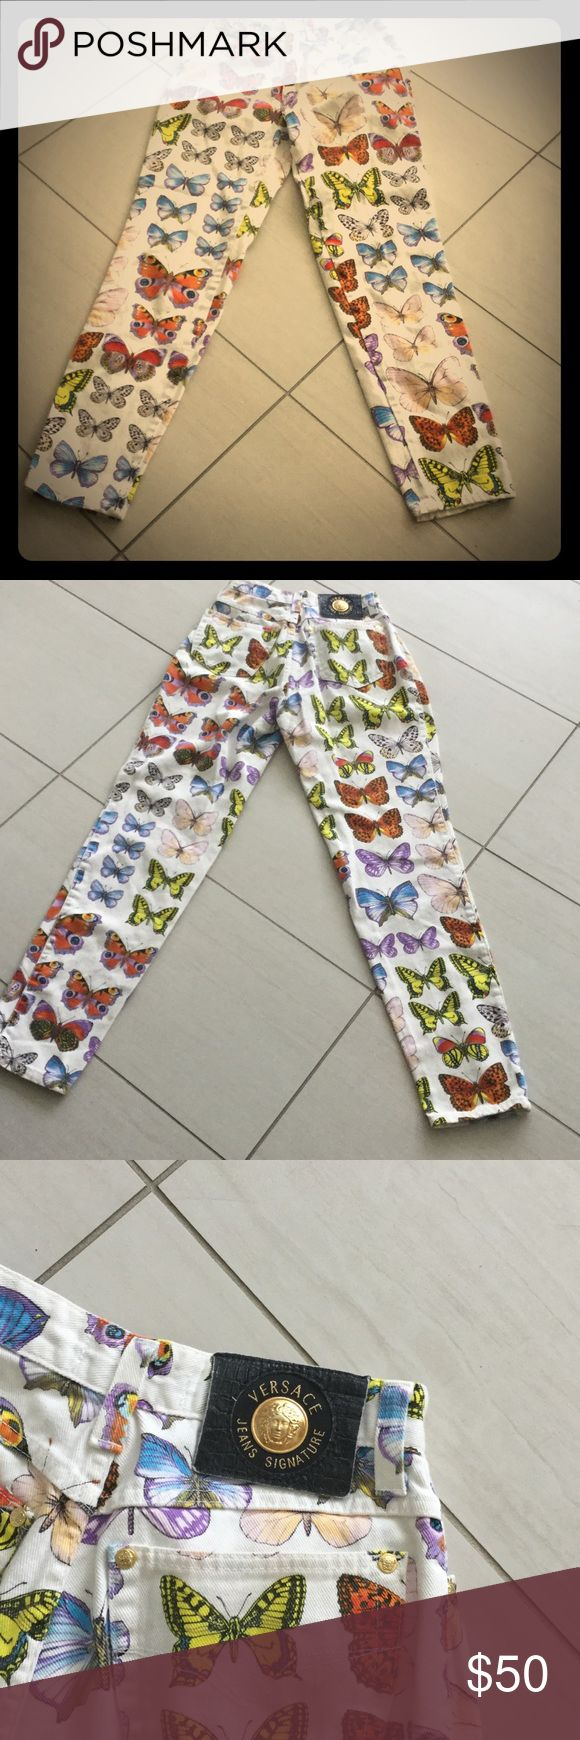 Versace Butterfly Pants Vintage White Denim Backdrop with Colorful Butterfly Design...front and back! So Retro 🎨 and Versace all the way. Versace Pants Straight Leg